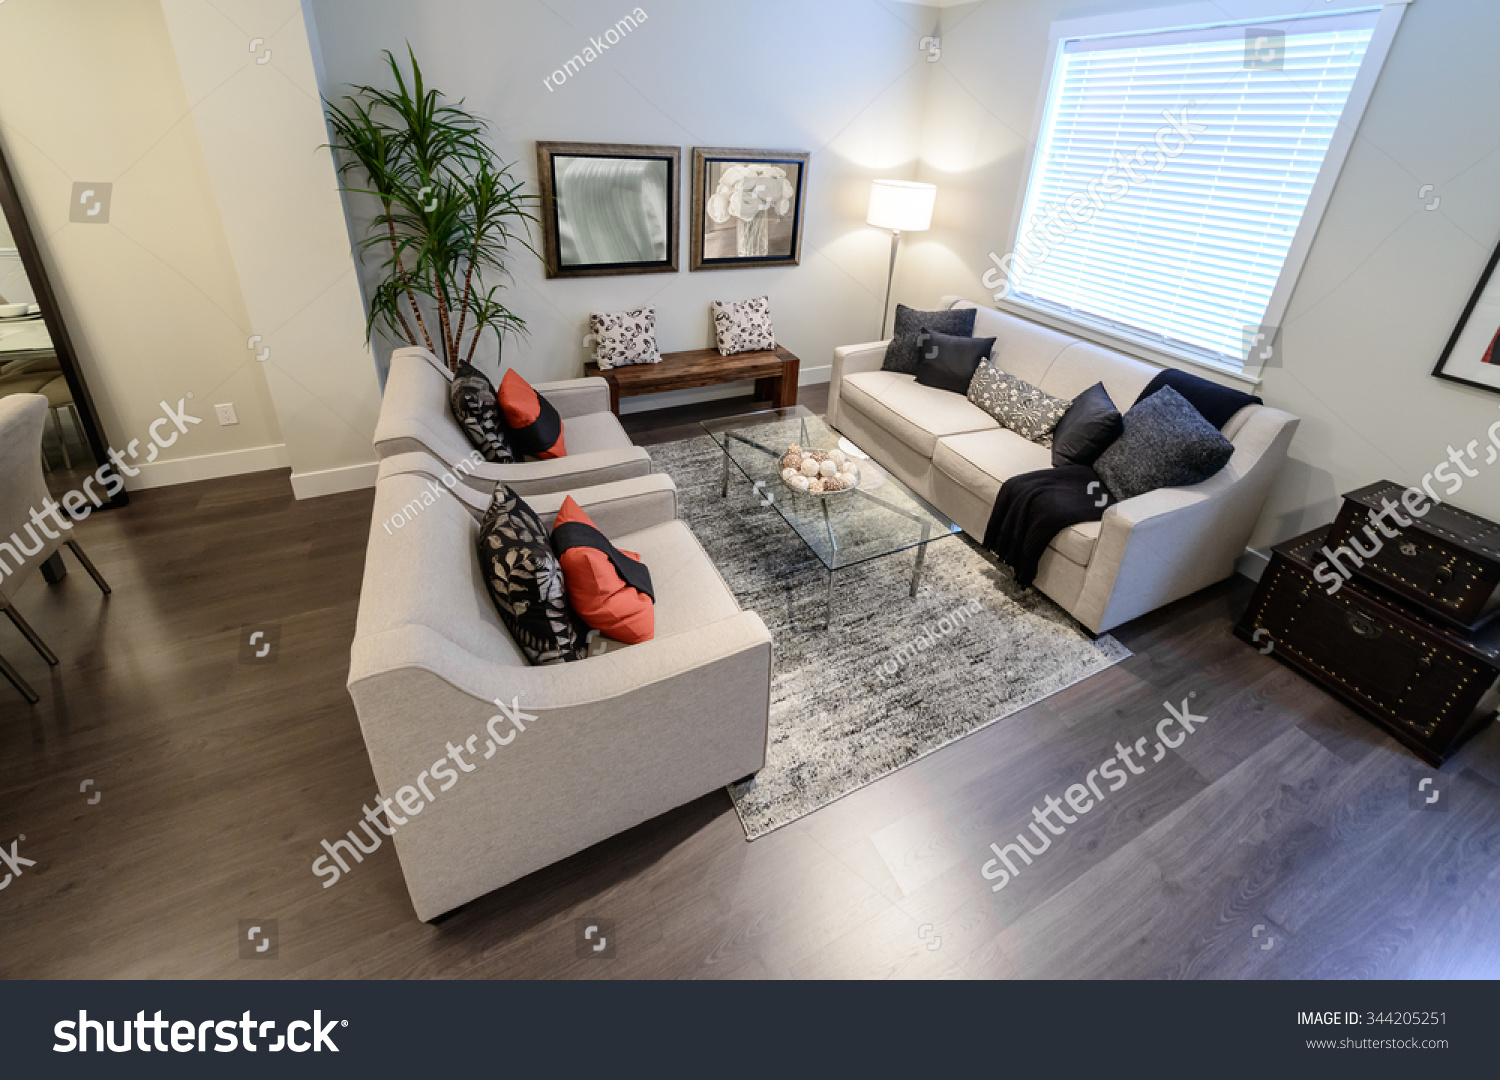 Interior Design Of Luxury Nicely Decorated Modern Living Room Suite With Sofa And Chairs